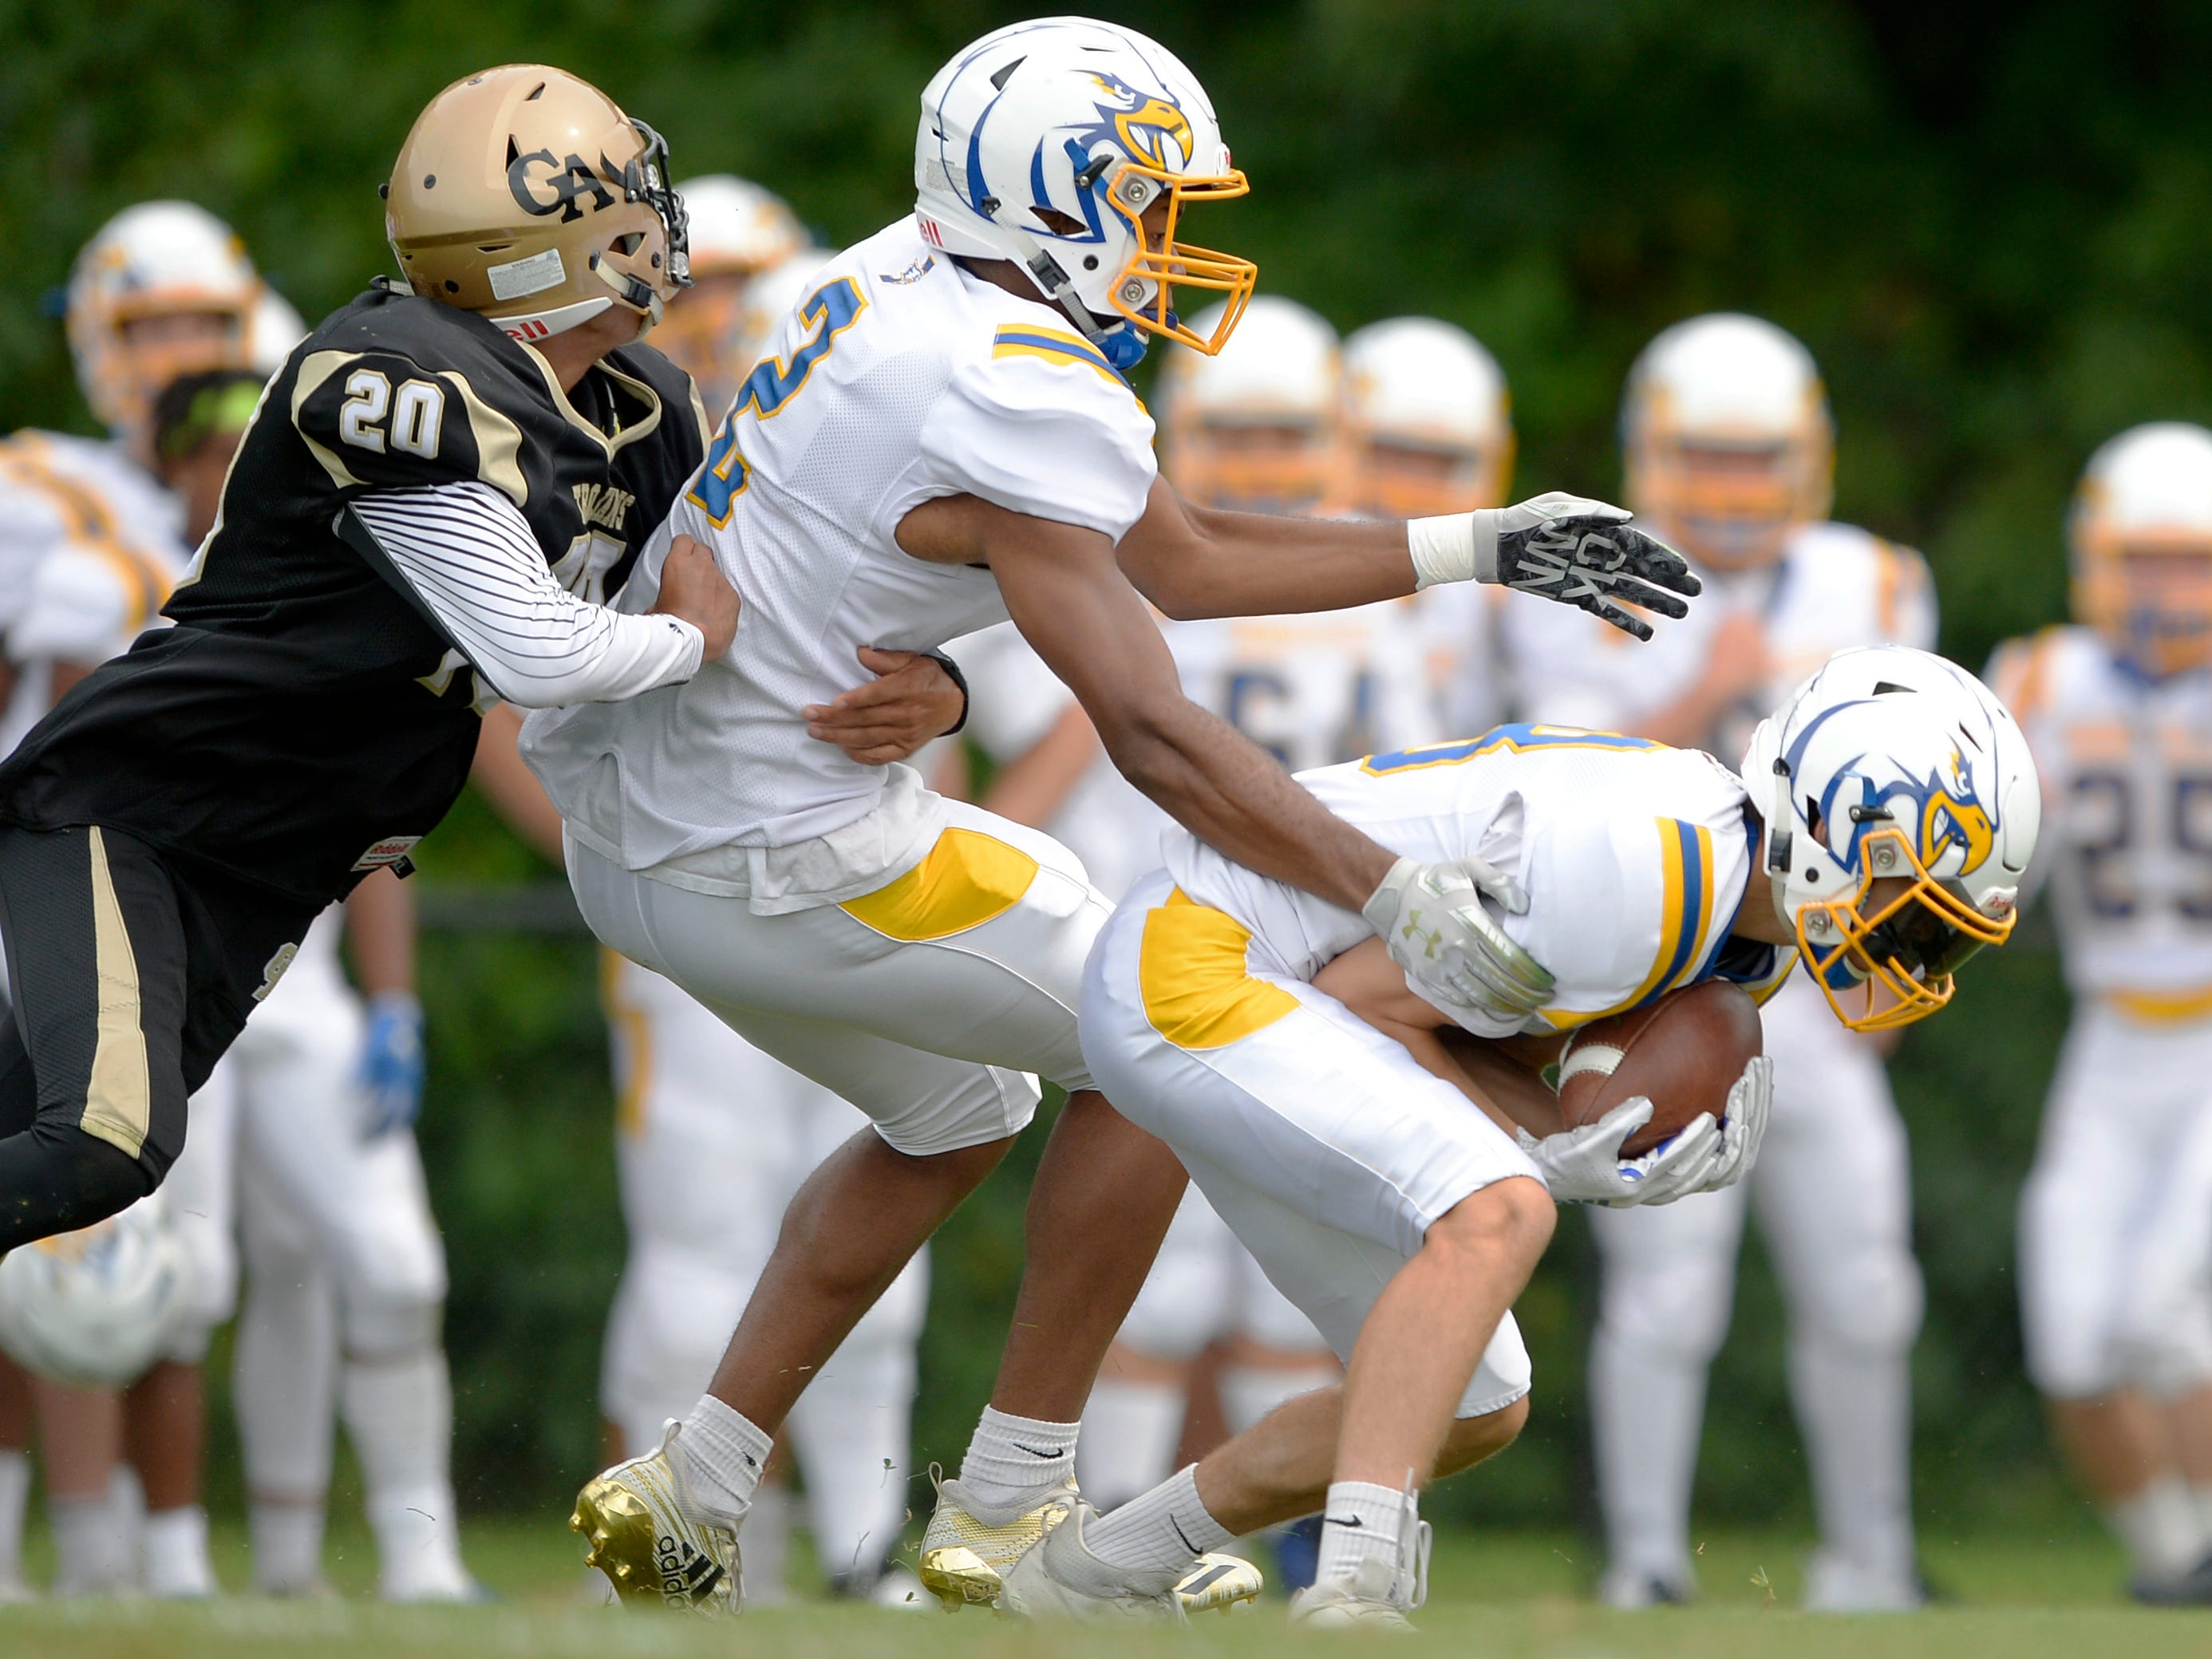 Irondequoit's Cam Kremer, right, intercepts a pass in front of Patrick Thomas IV that was intended for Greece Athena's Johnny Salone, left.